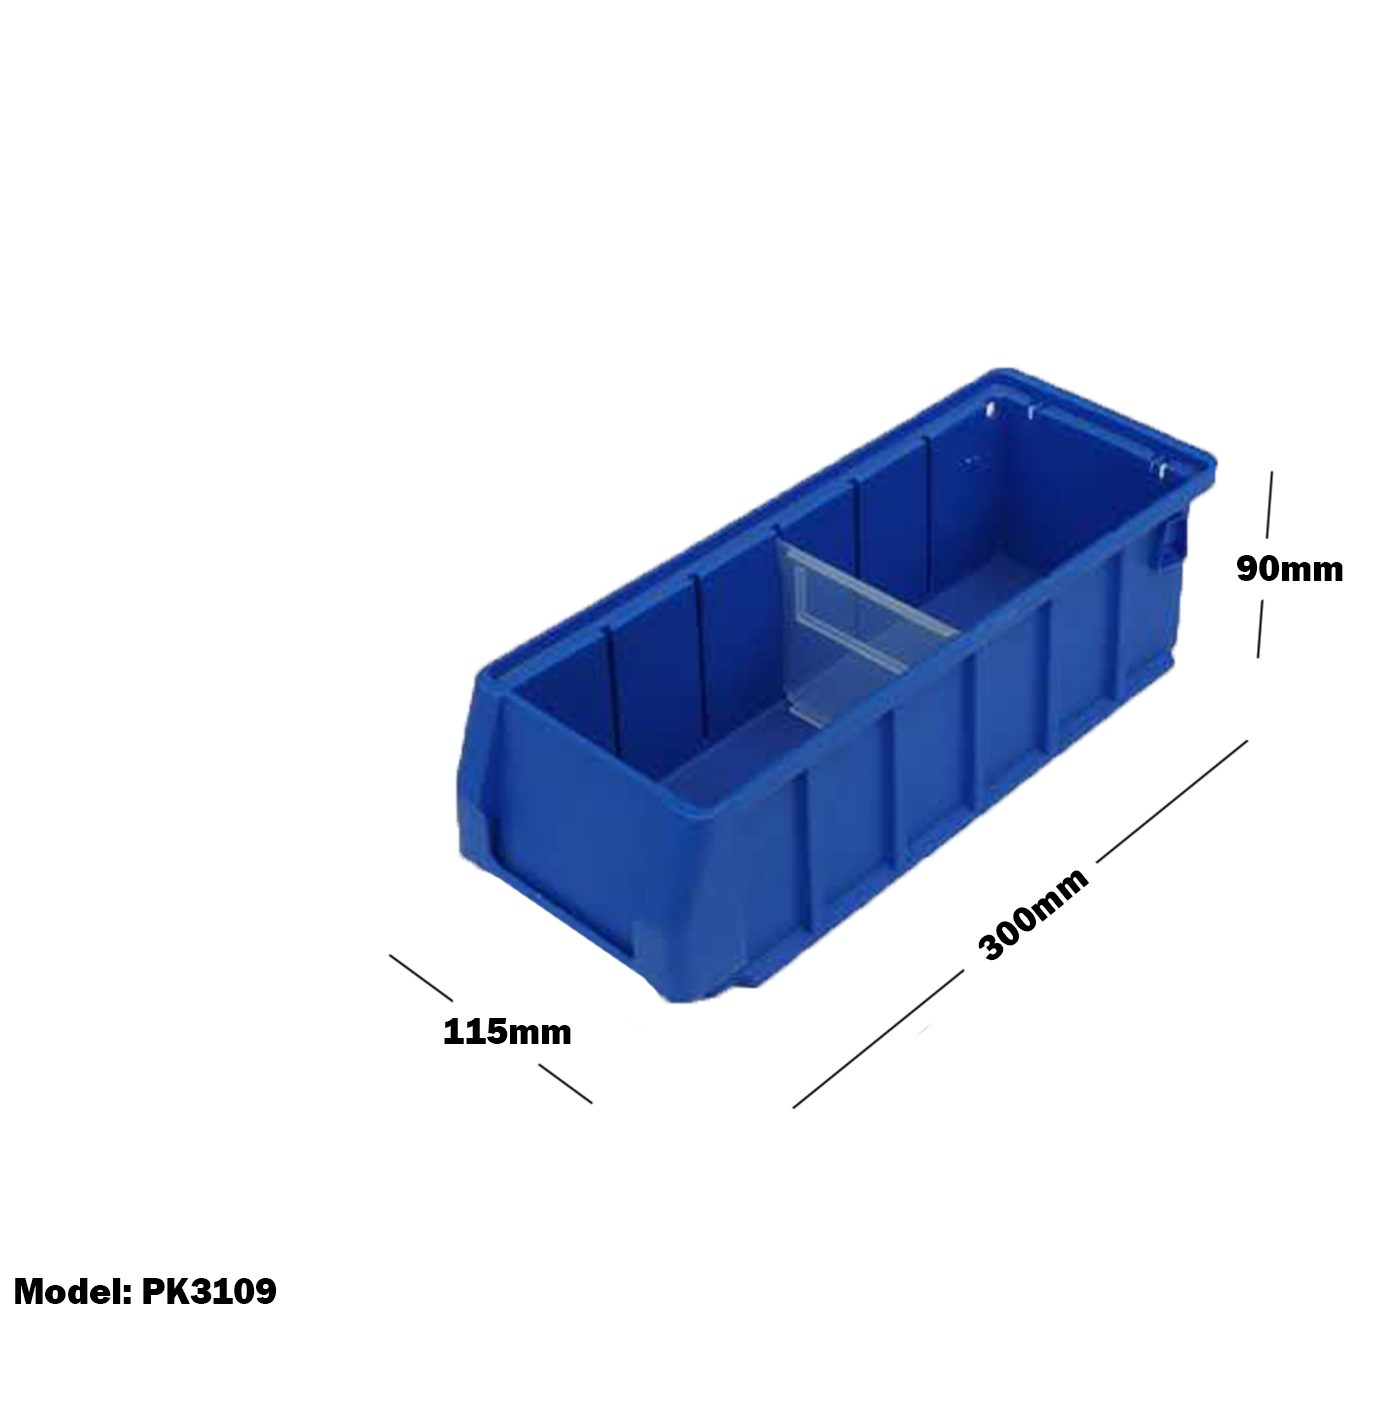 Blue Plastic Stackable Space Saving Storage Bin PK3109